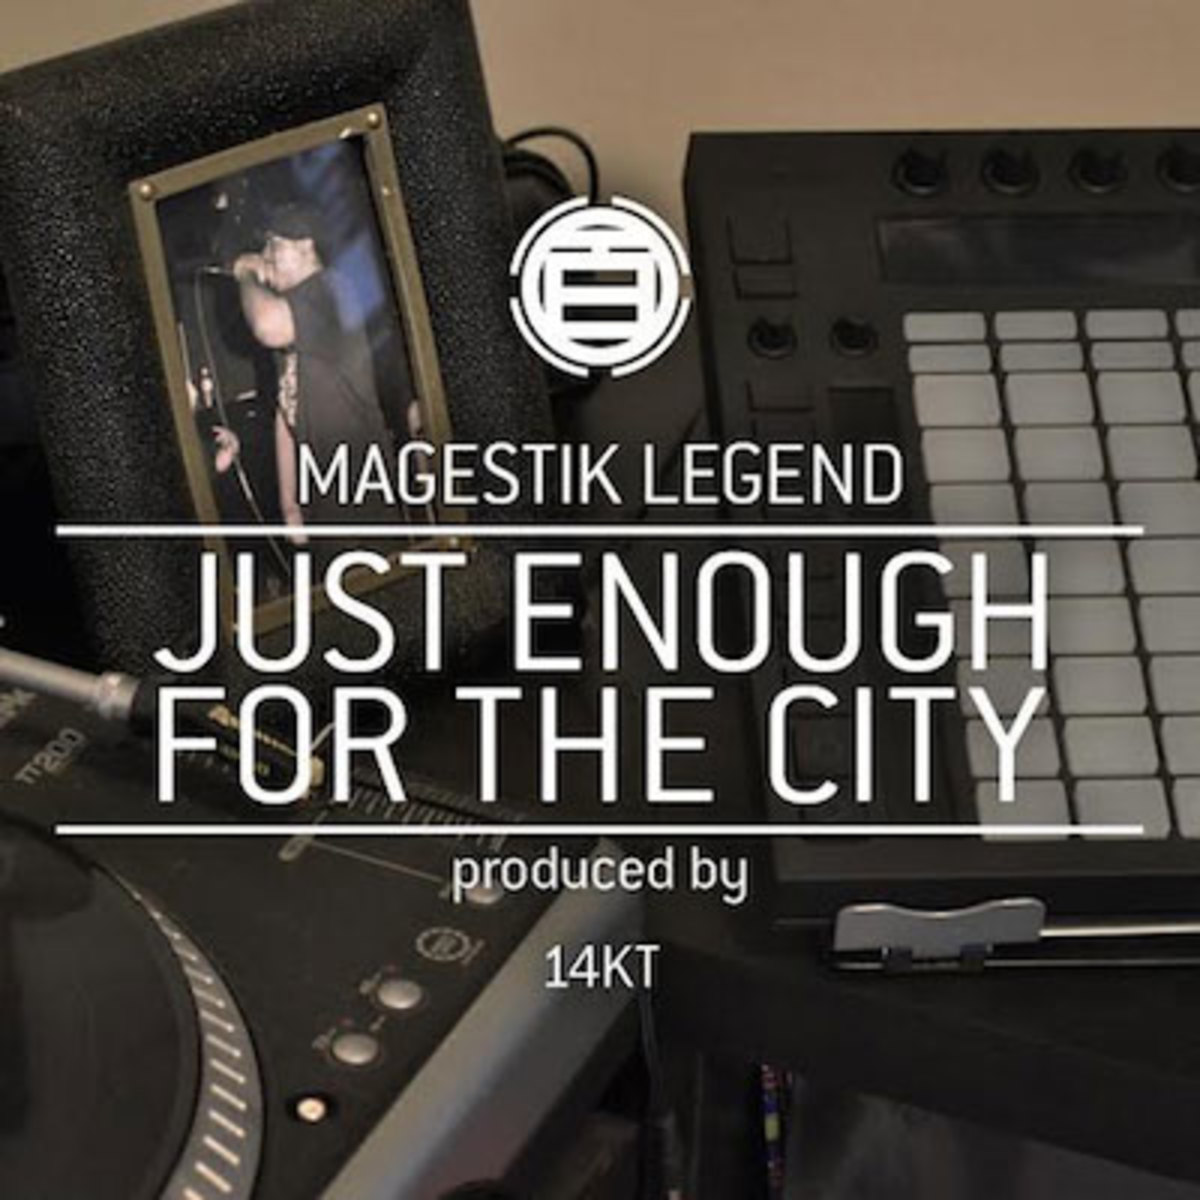 magestik-legend-just-enough-for-the-city.jpg